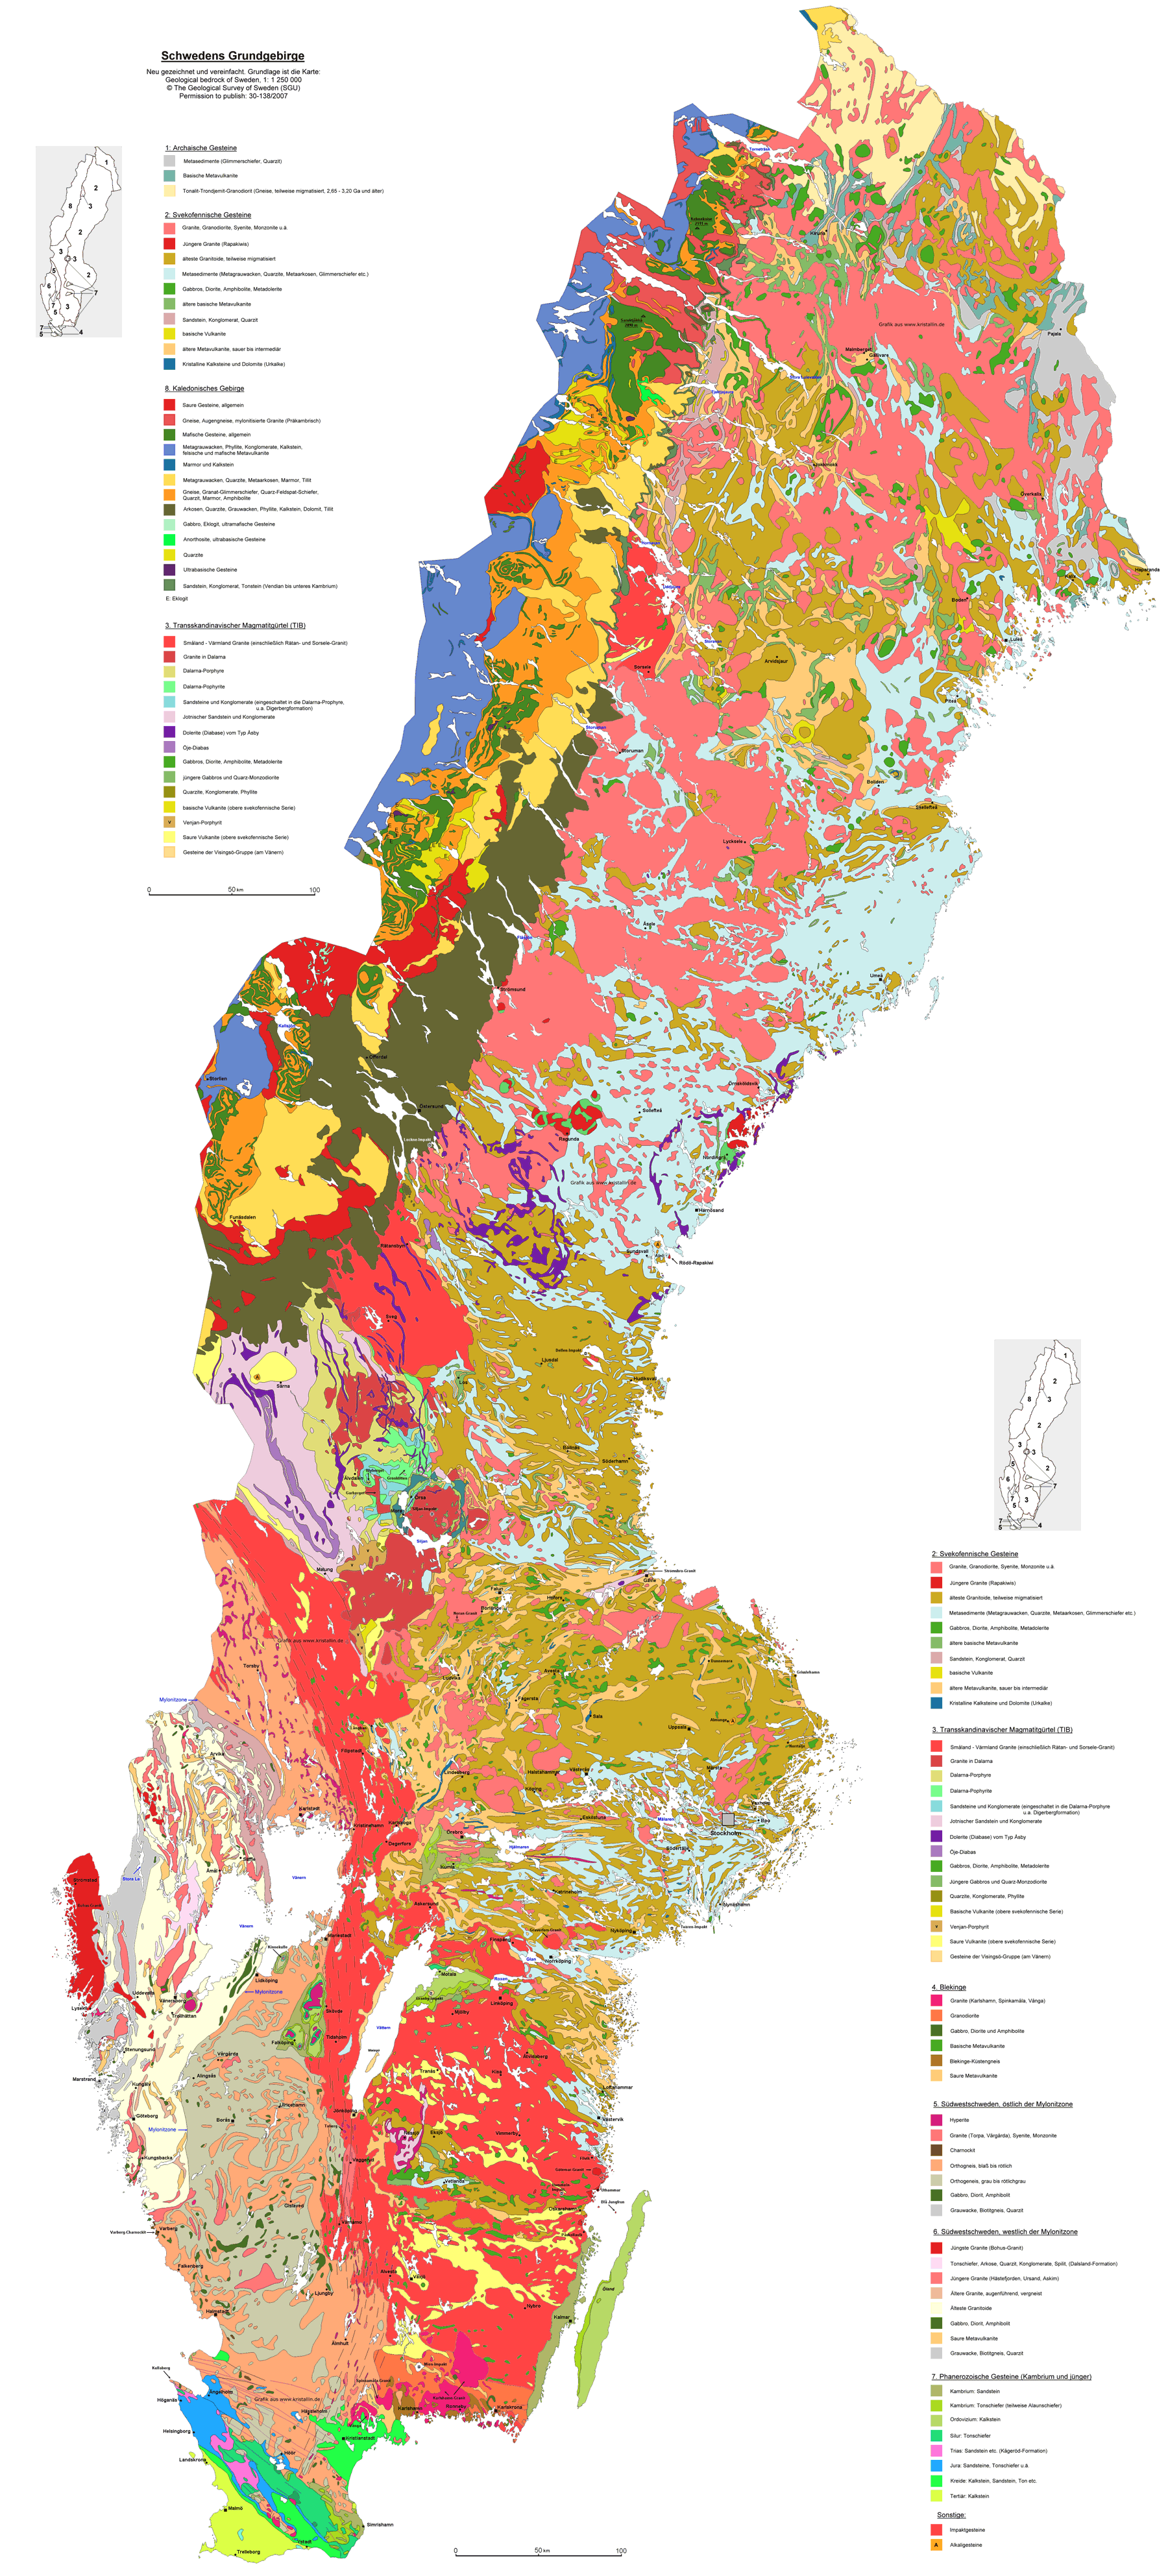 Sweden Map Mapsofnet - Sweden full map